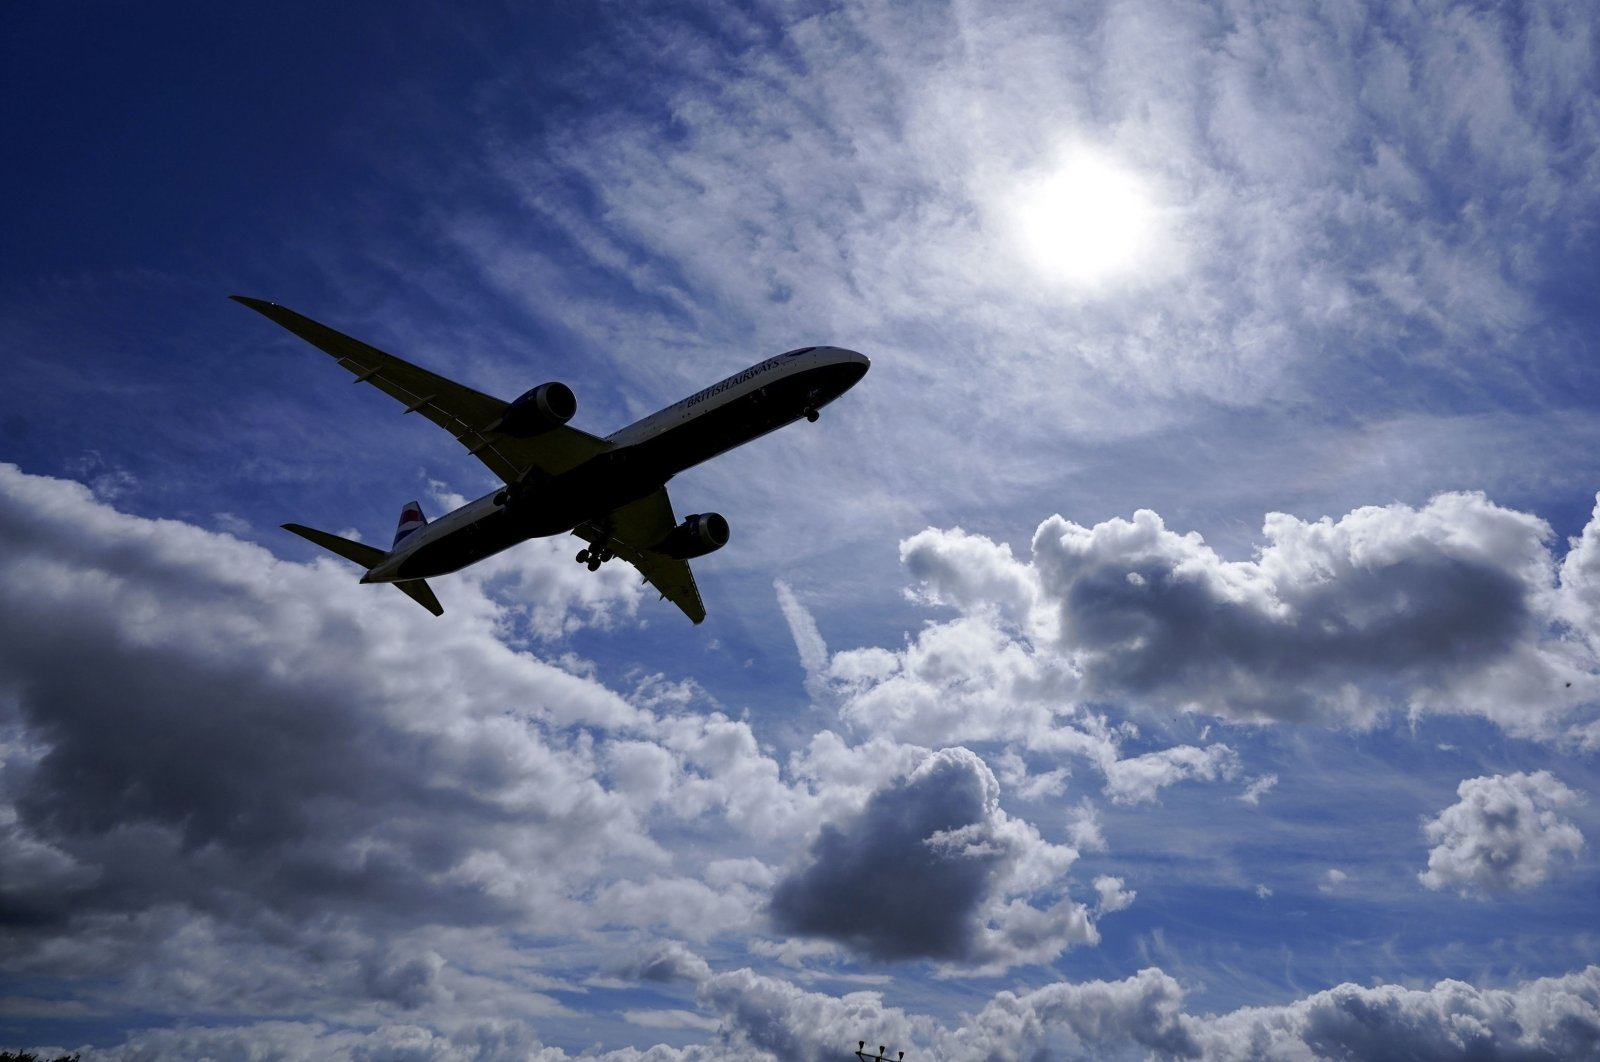 A plane preparing to land on the southern runway at London's Heathrow Airport, U.K., July 29, 2021. (AP Photo)